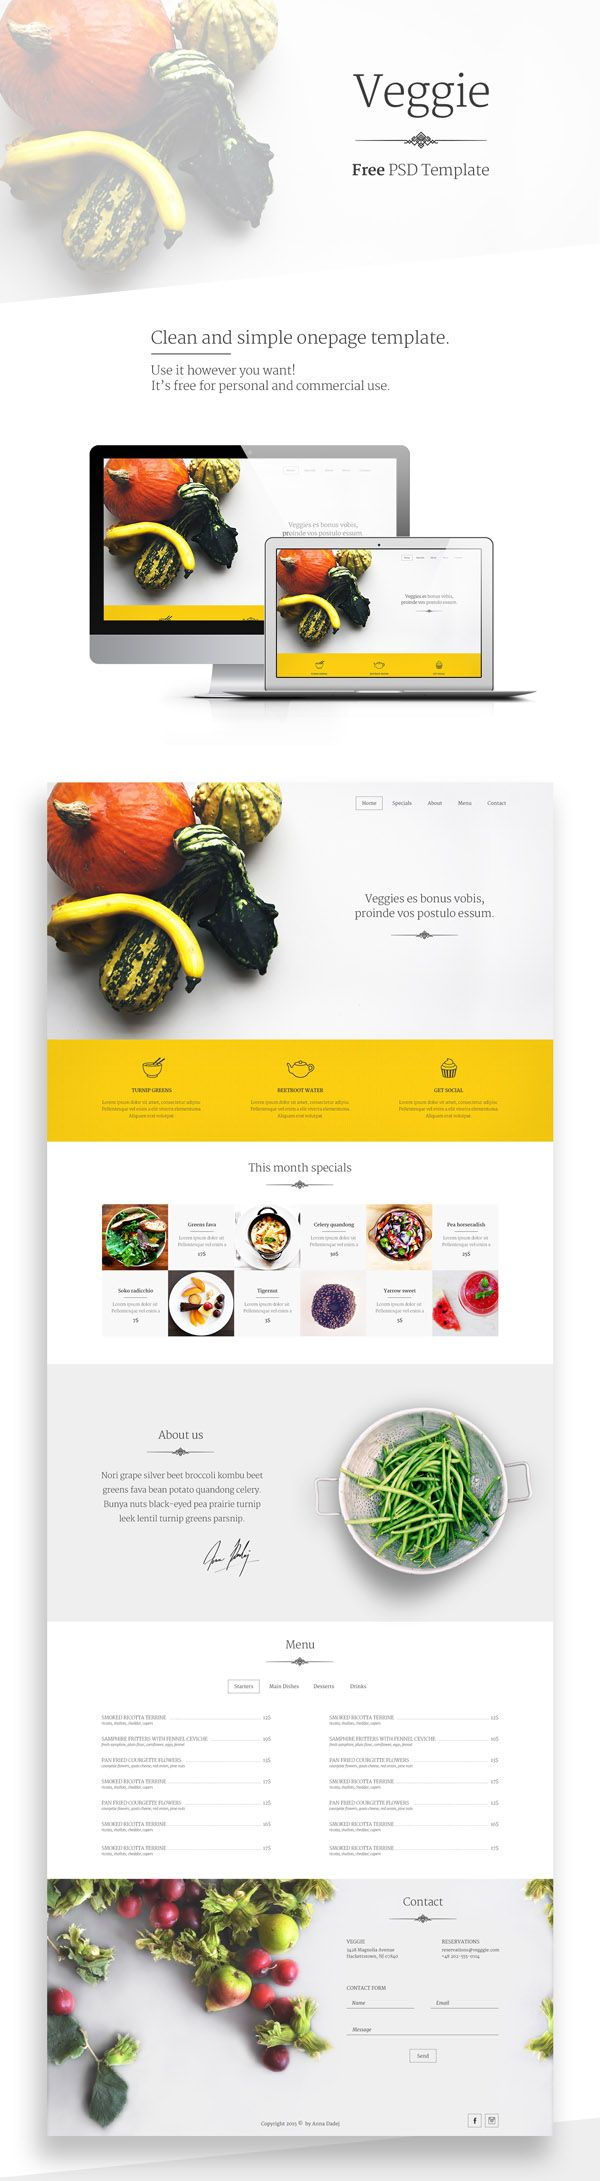 102 best psd templates images on pinterest psd templates veggie free useful and modern psd template this template can be used in the food business use it in personal or commercial projects share it pronofoot35fo Gallery